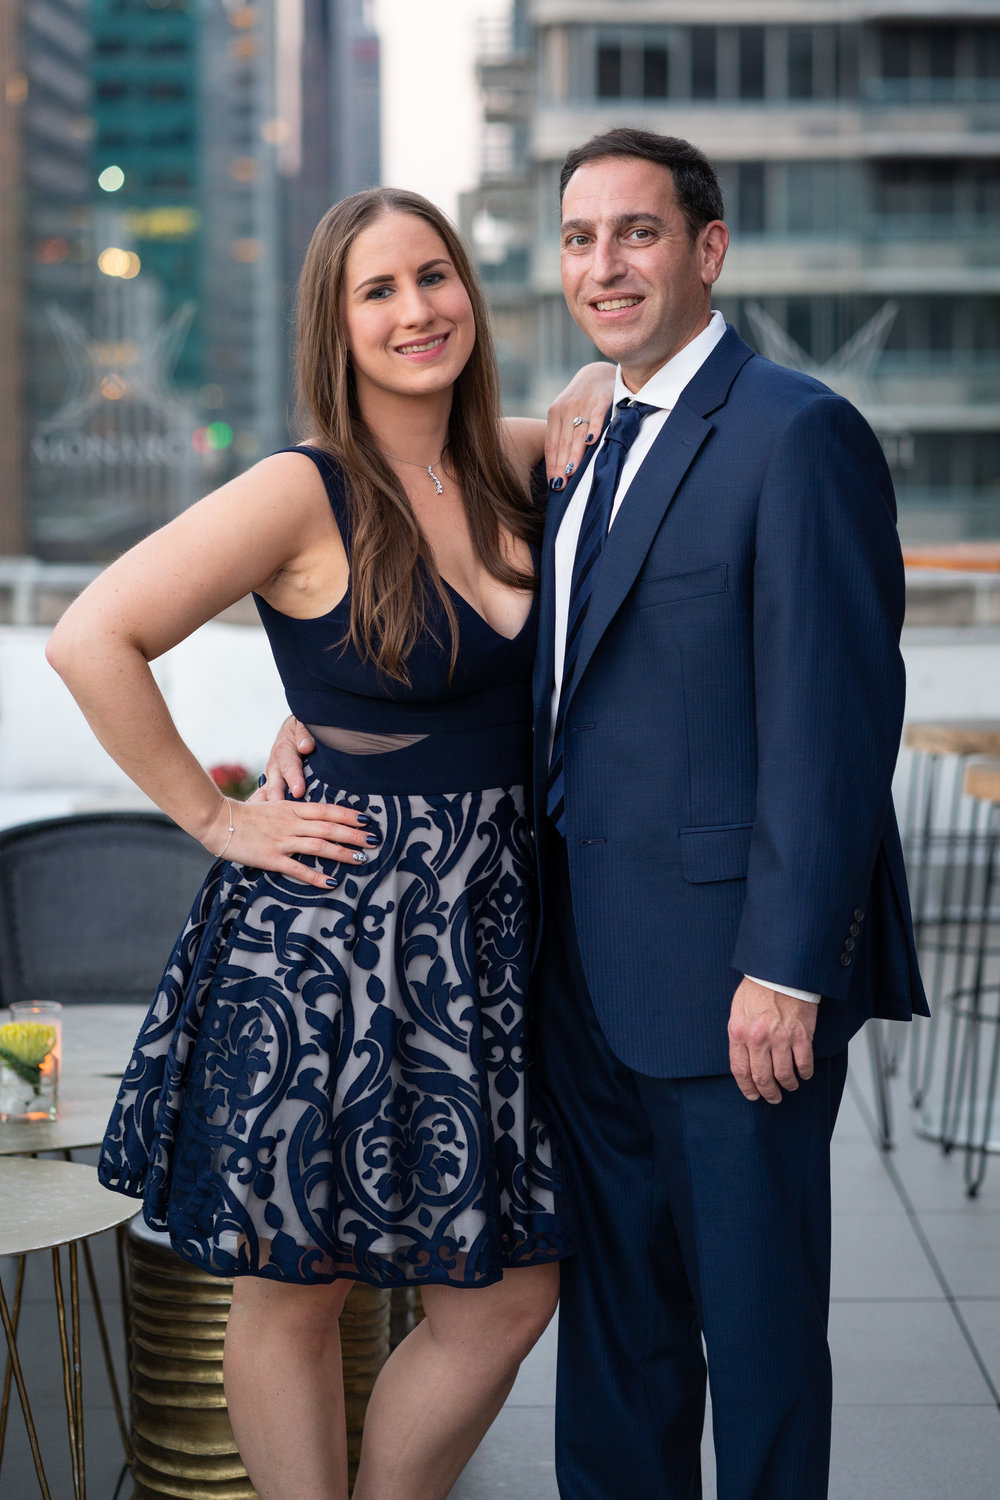 20181007_EngagementParty-23.jpg